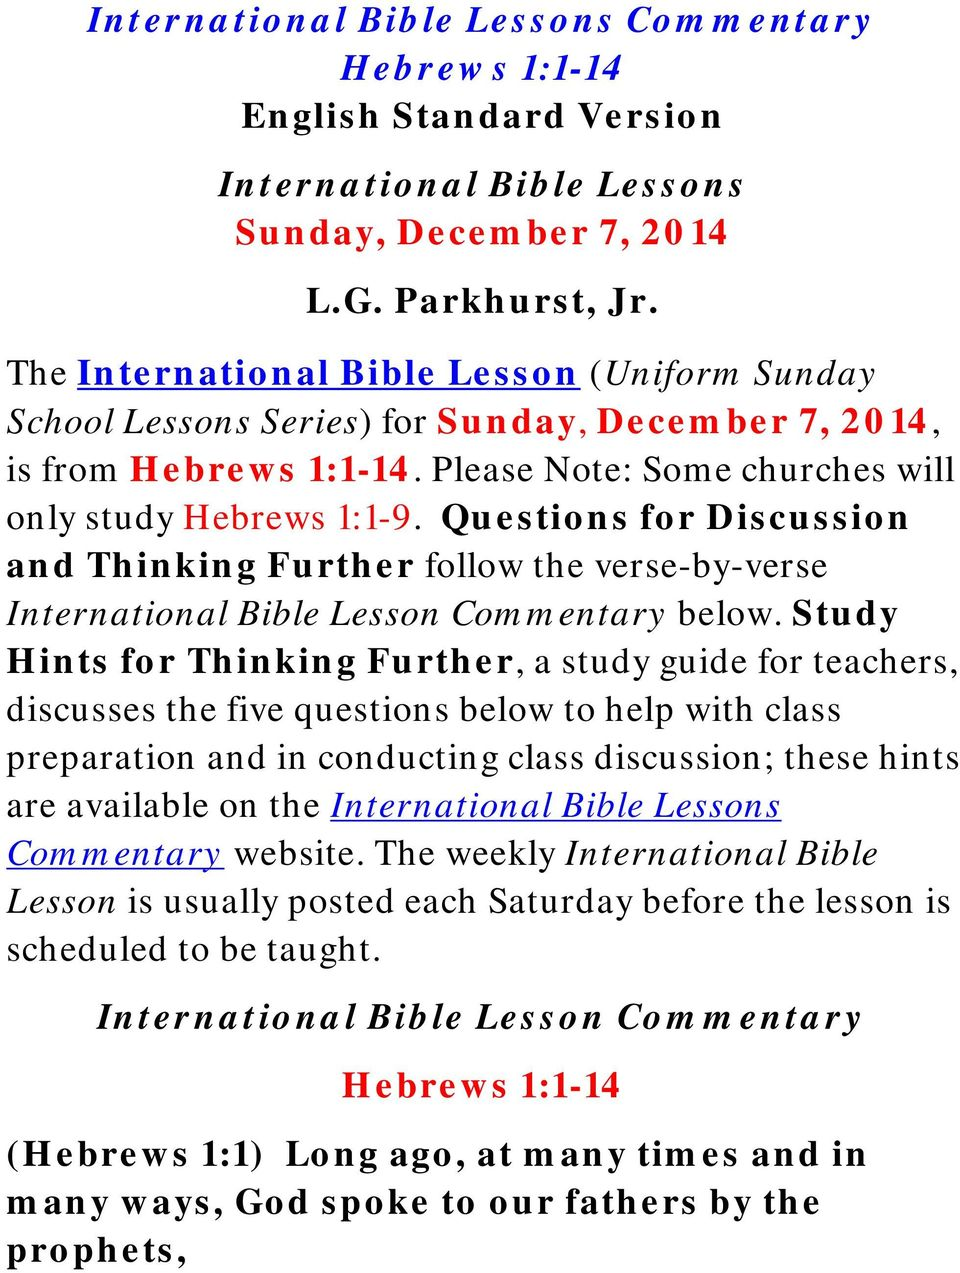 Questions for Discussion and Thinking Further follow the verse-by-verse International Bible Lesson Commentary below.